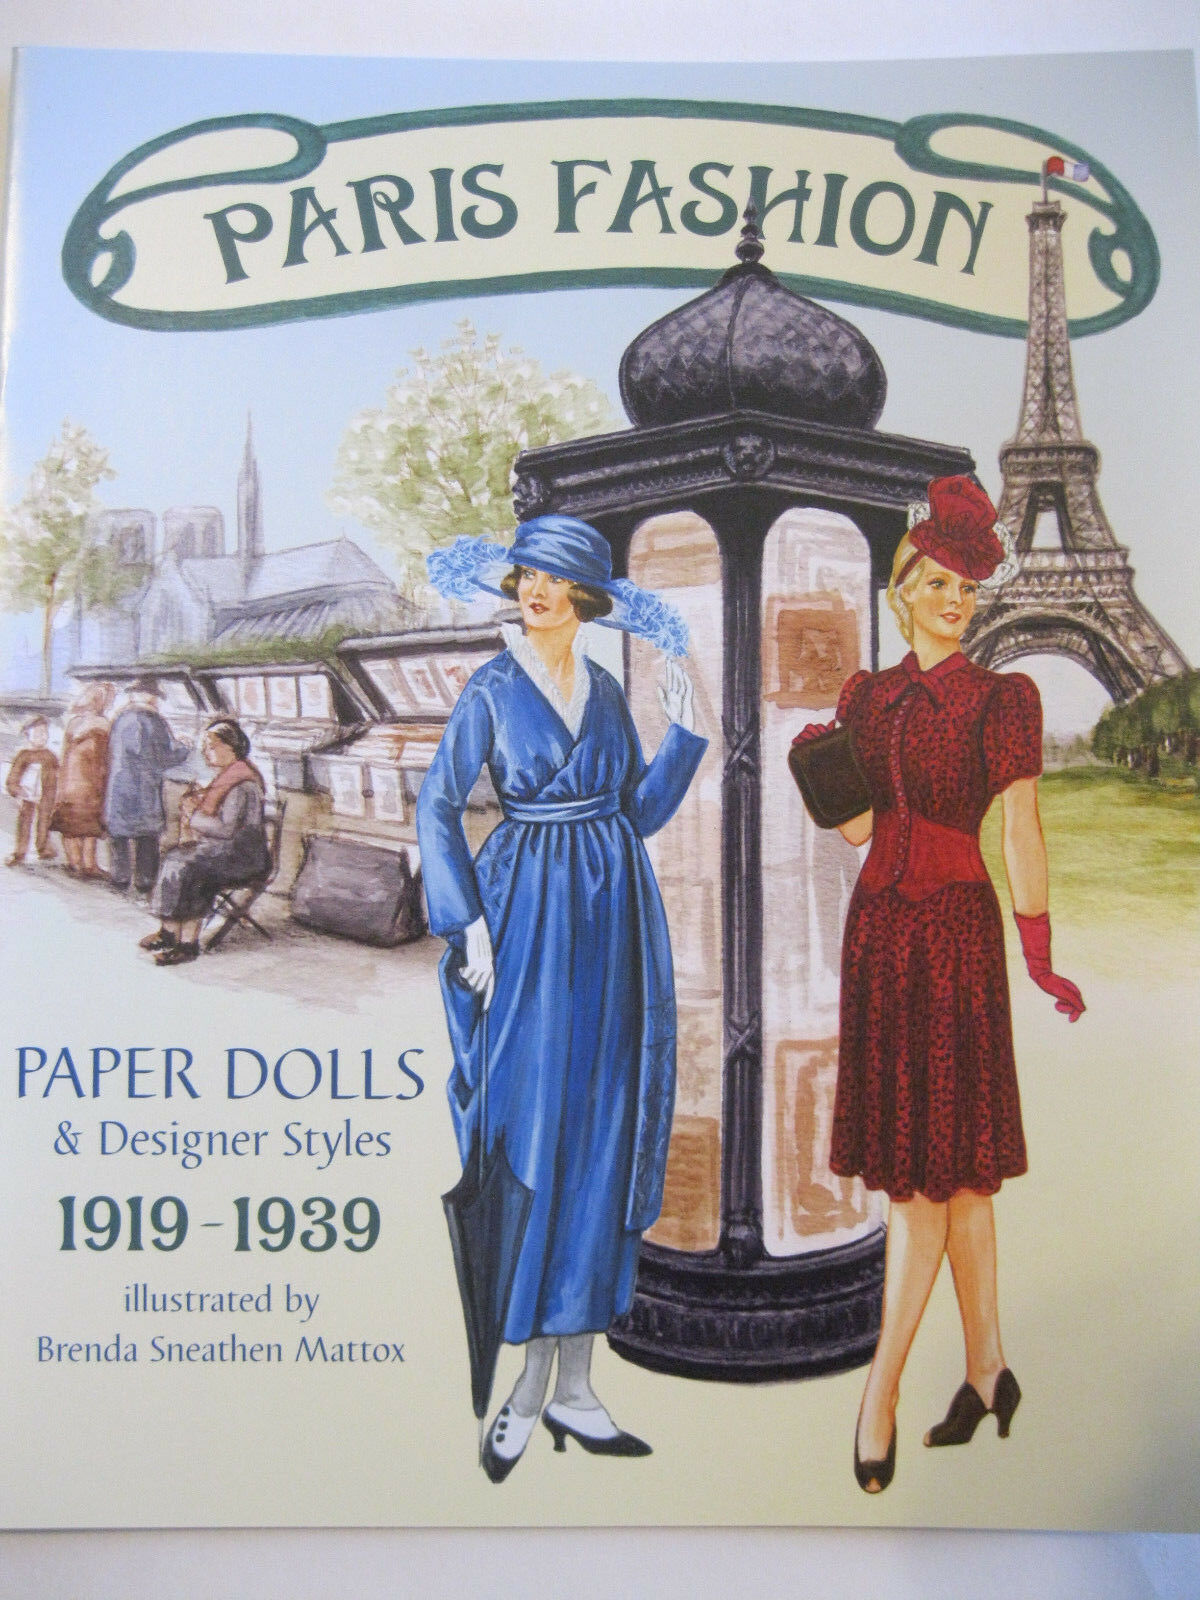 Current Events - The National Museum of Toys and Miniatures French fashion designers paper dolls